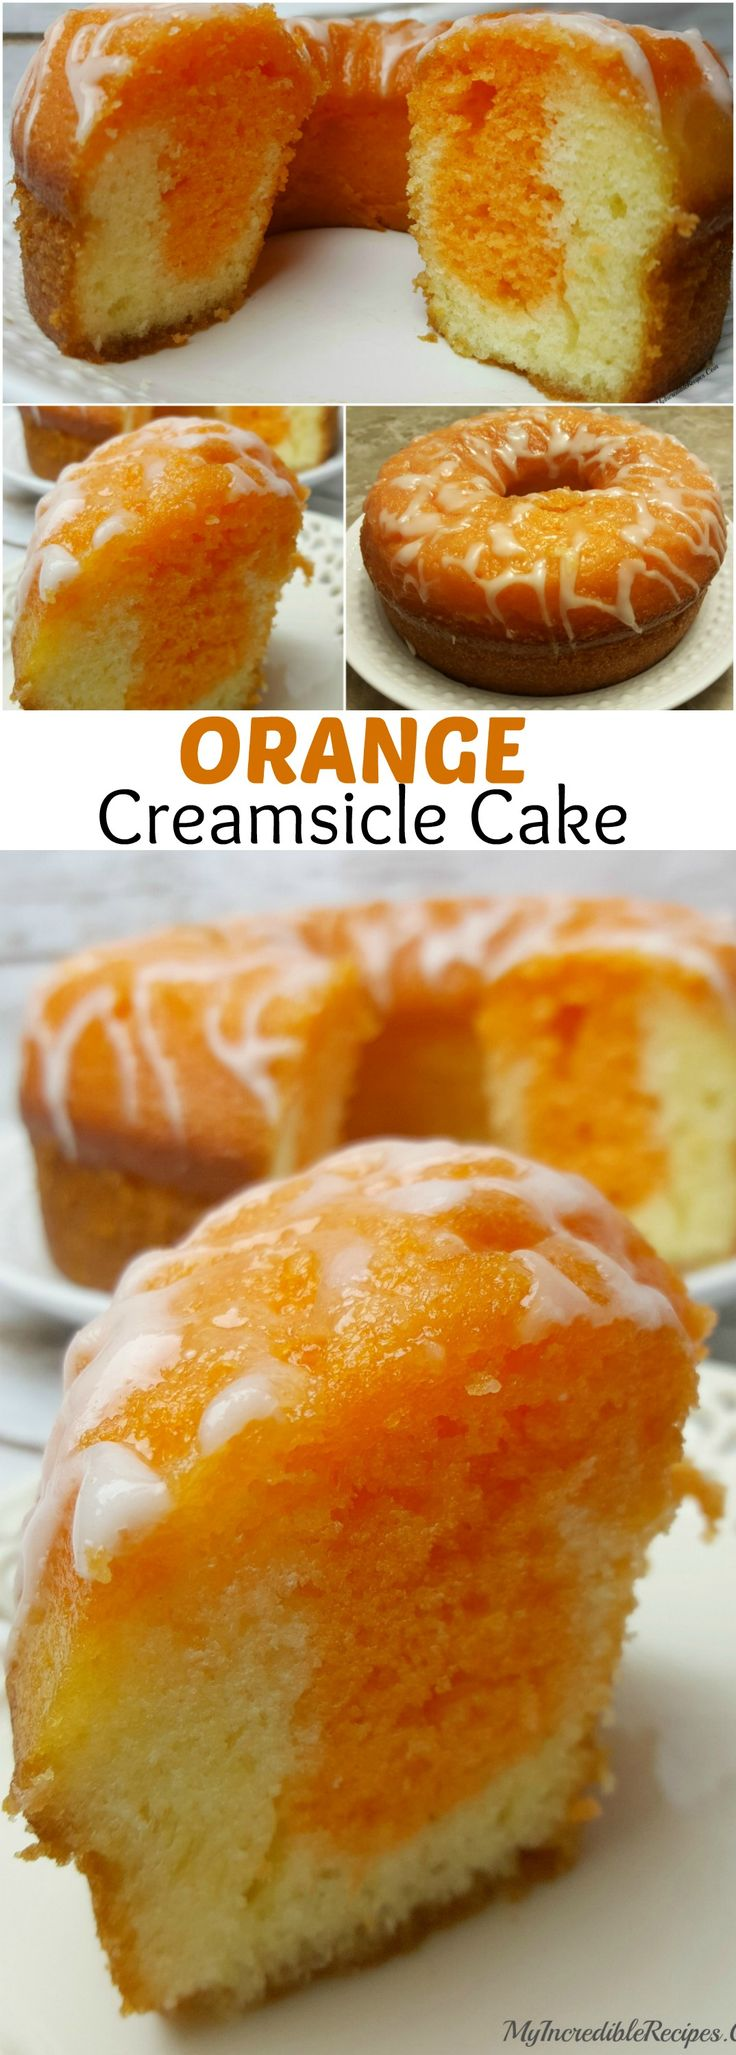 Orange Creamsicle Cake!